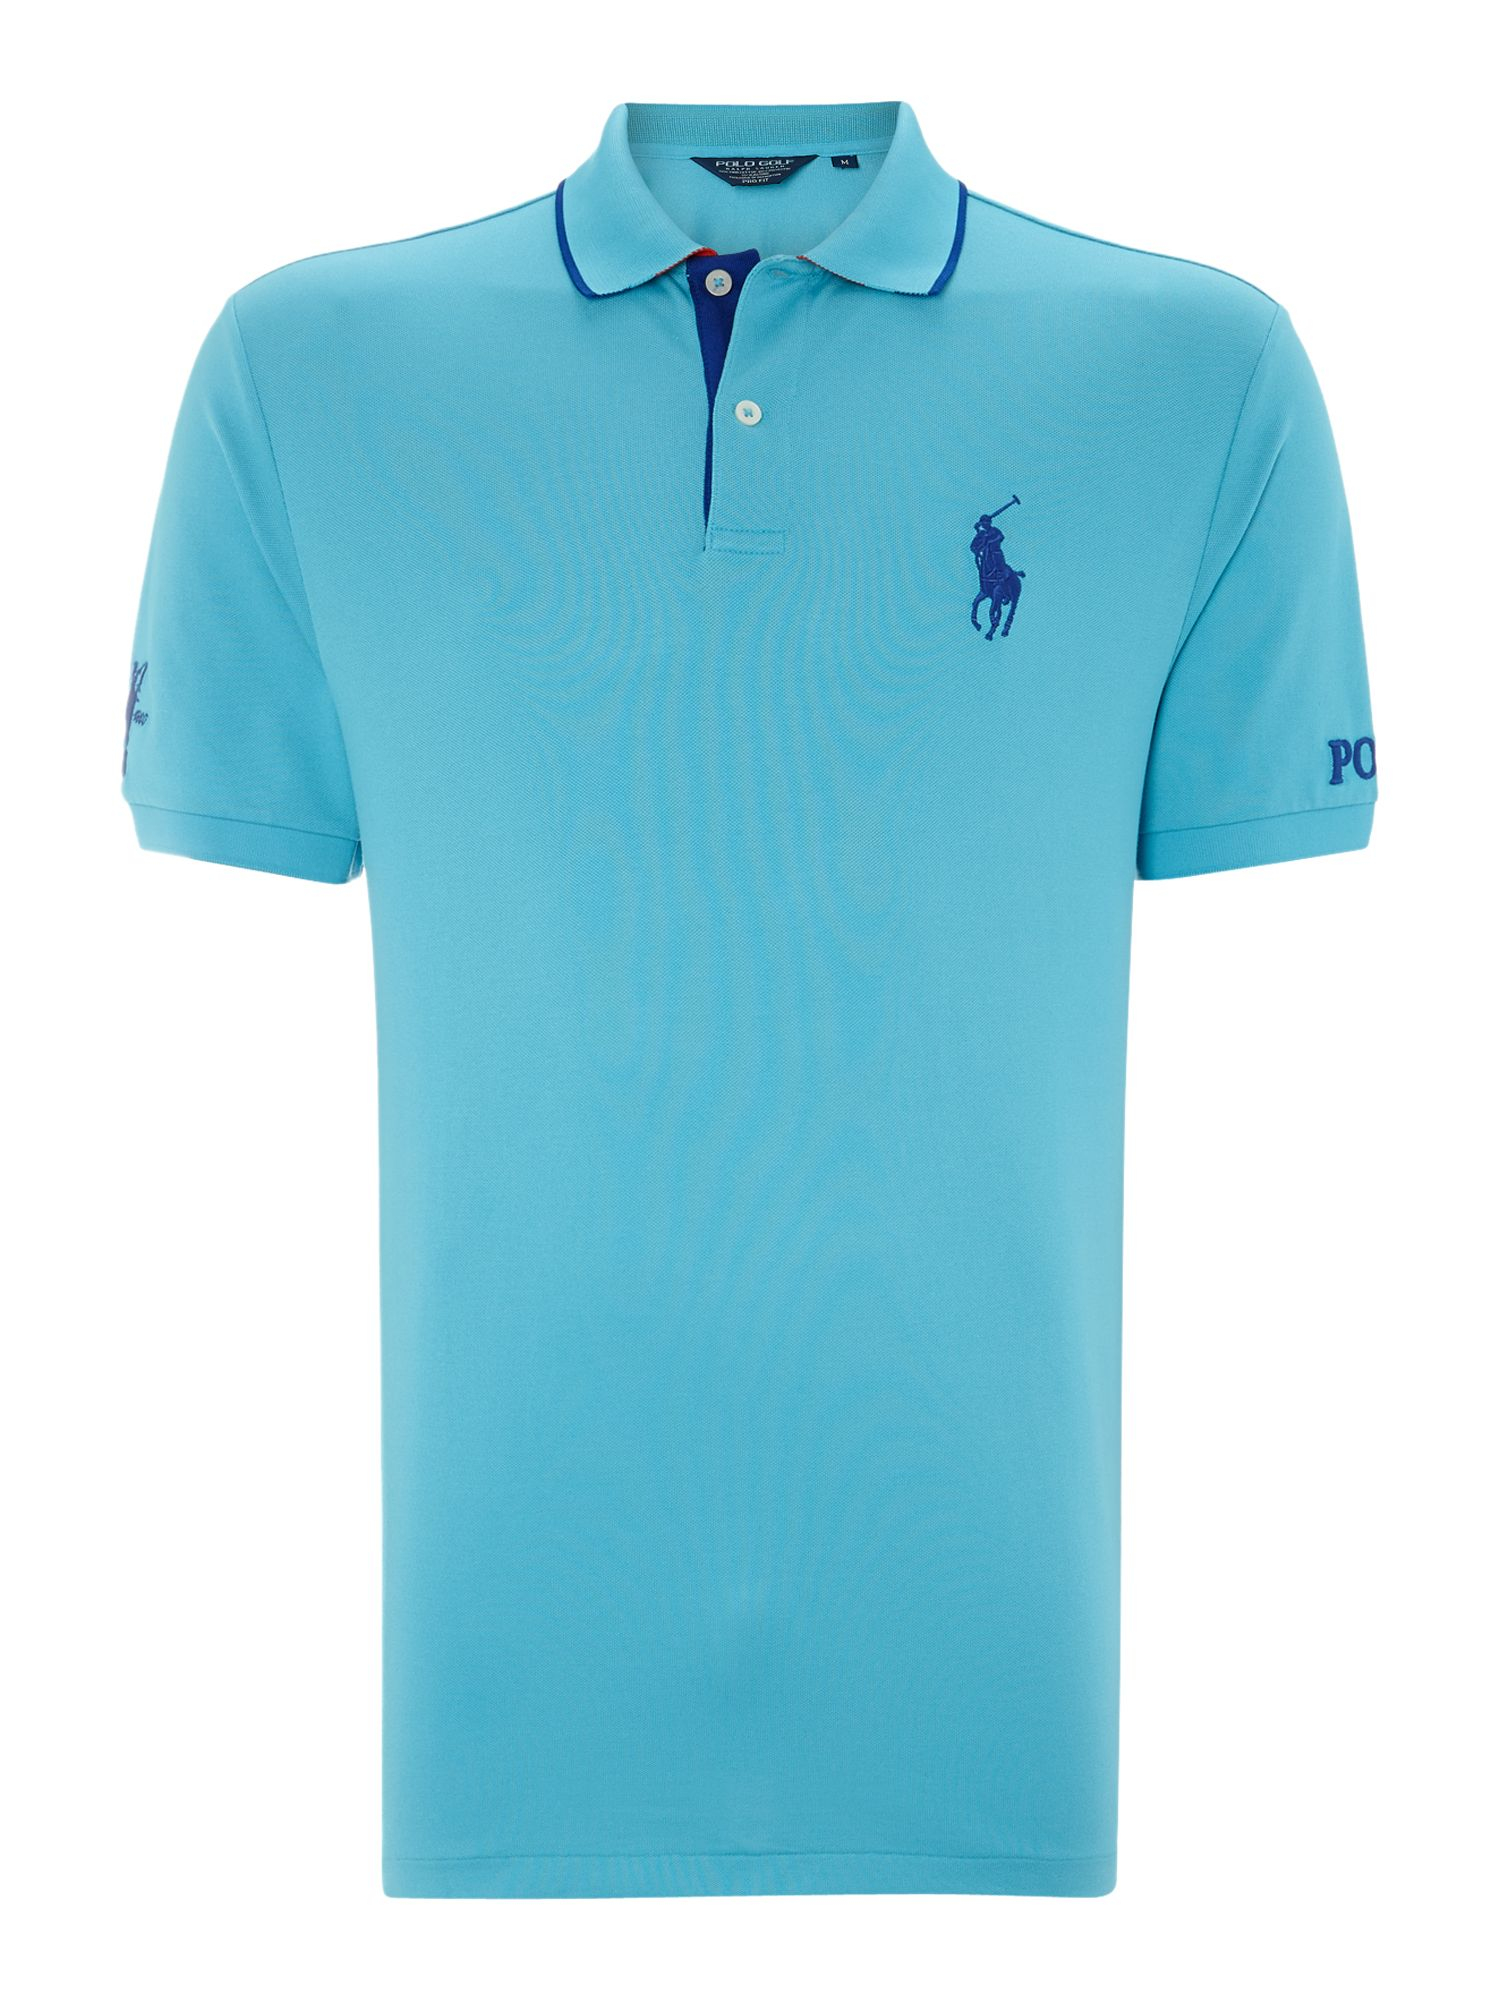 Ralph lauren golf polo golf the open polo shirt in blue for Polo golf shirts for men